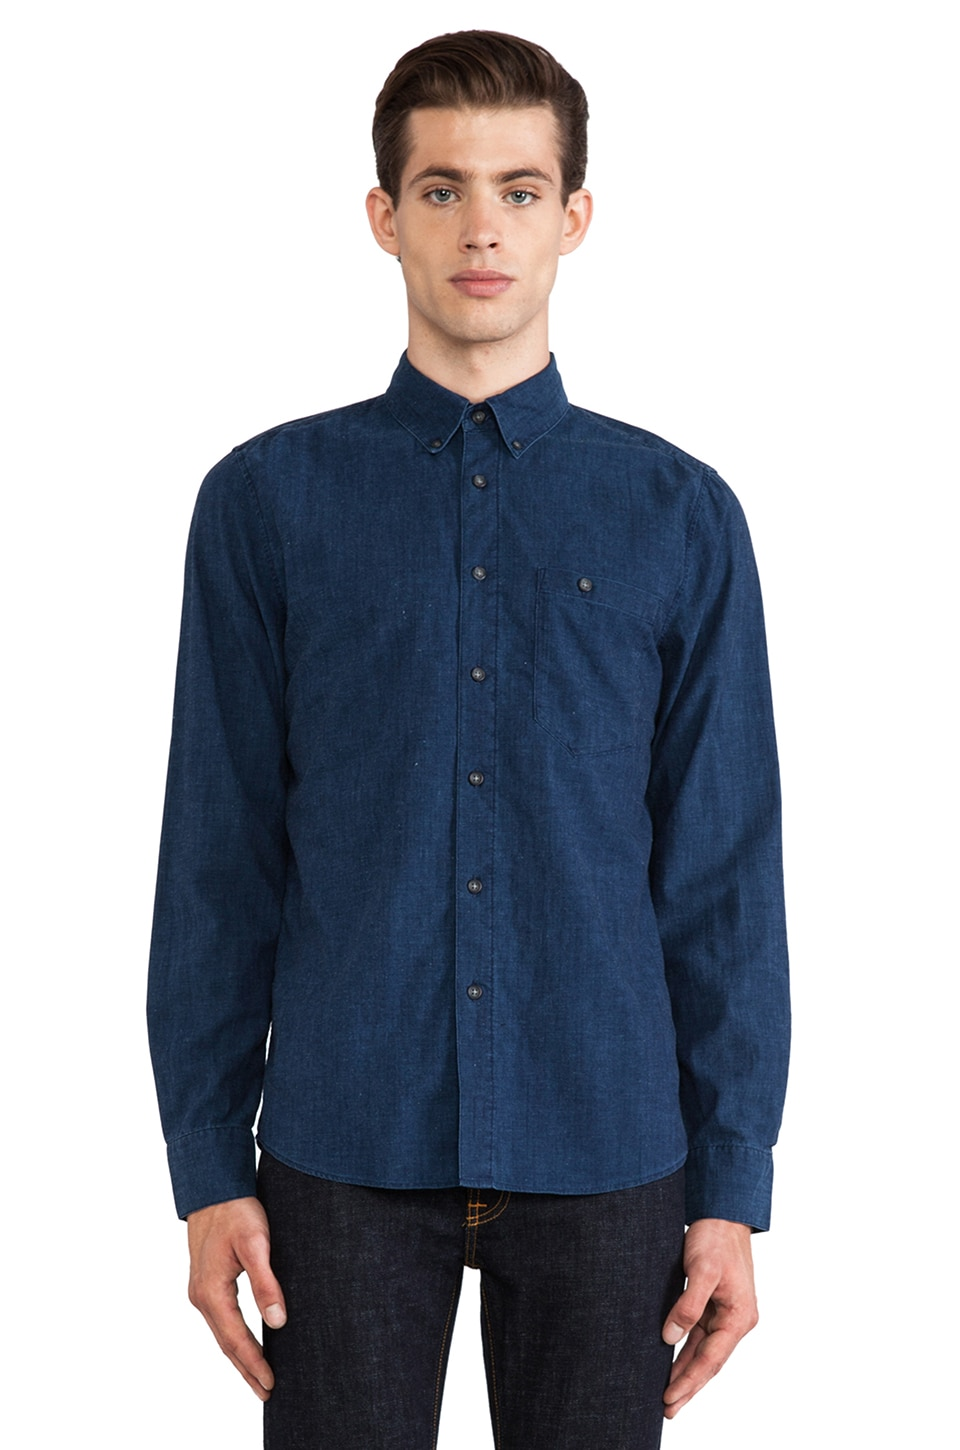 Nudie Jeans Stanley Shirt in Org. Deep Blue